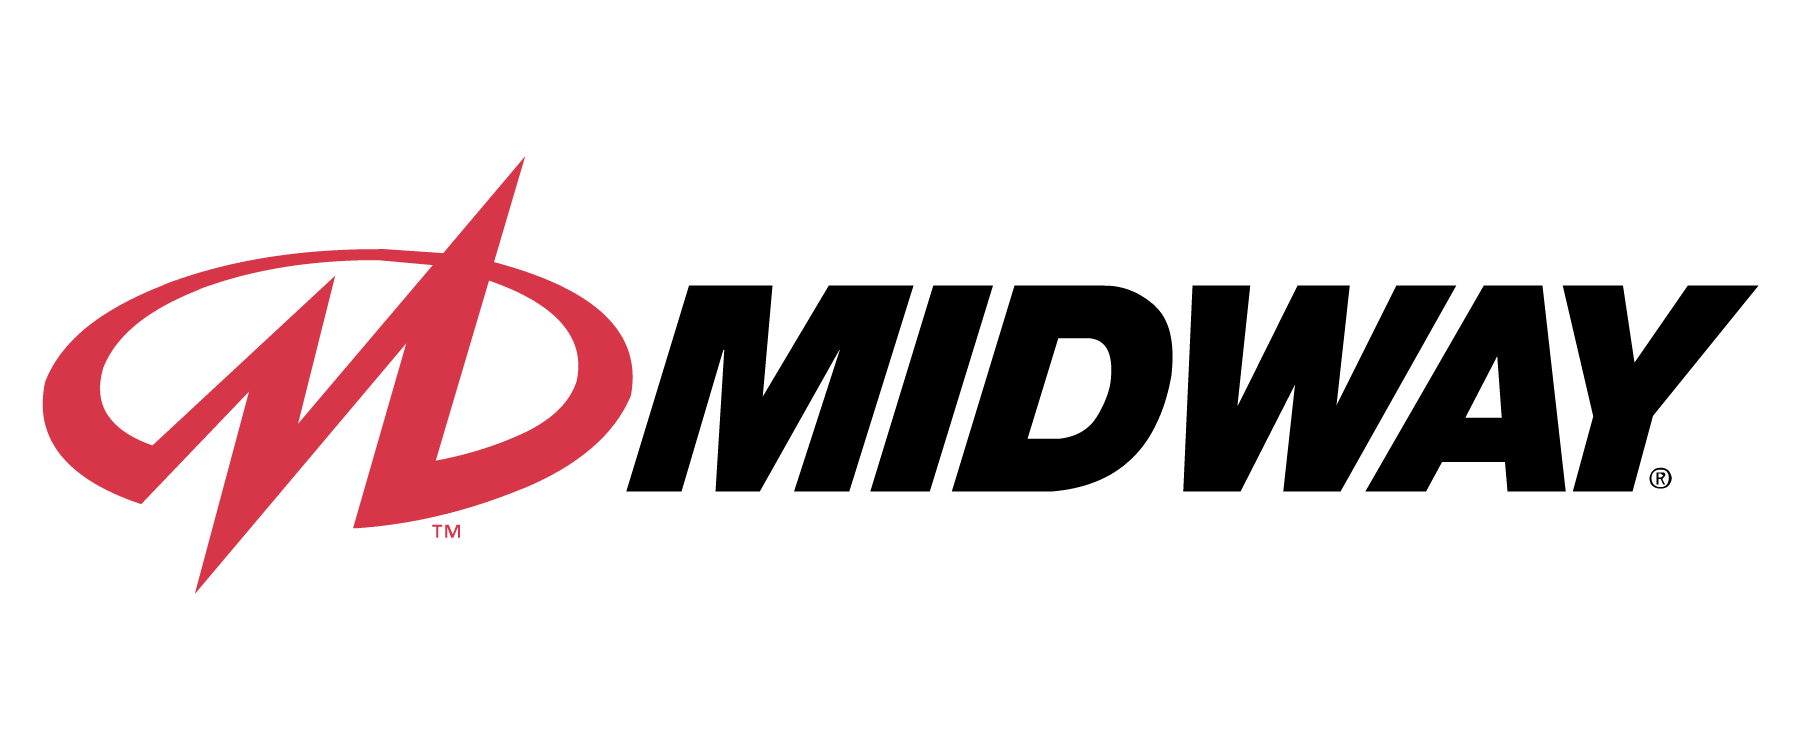 Midway Buyout Official